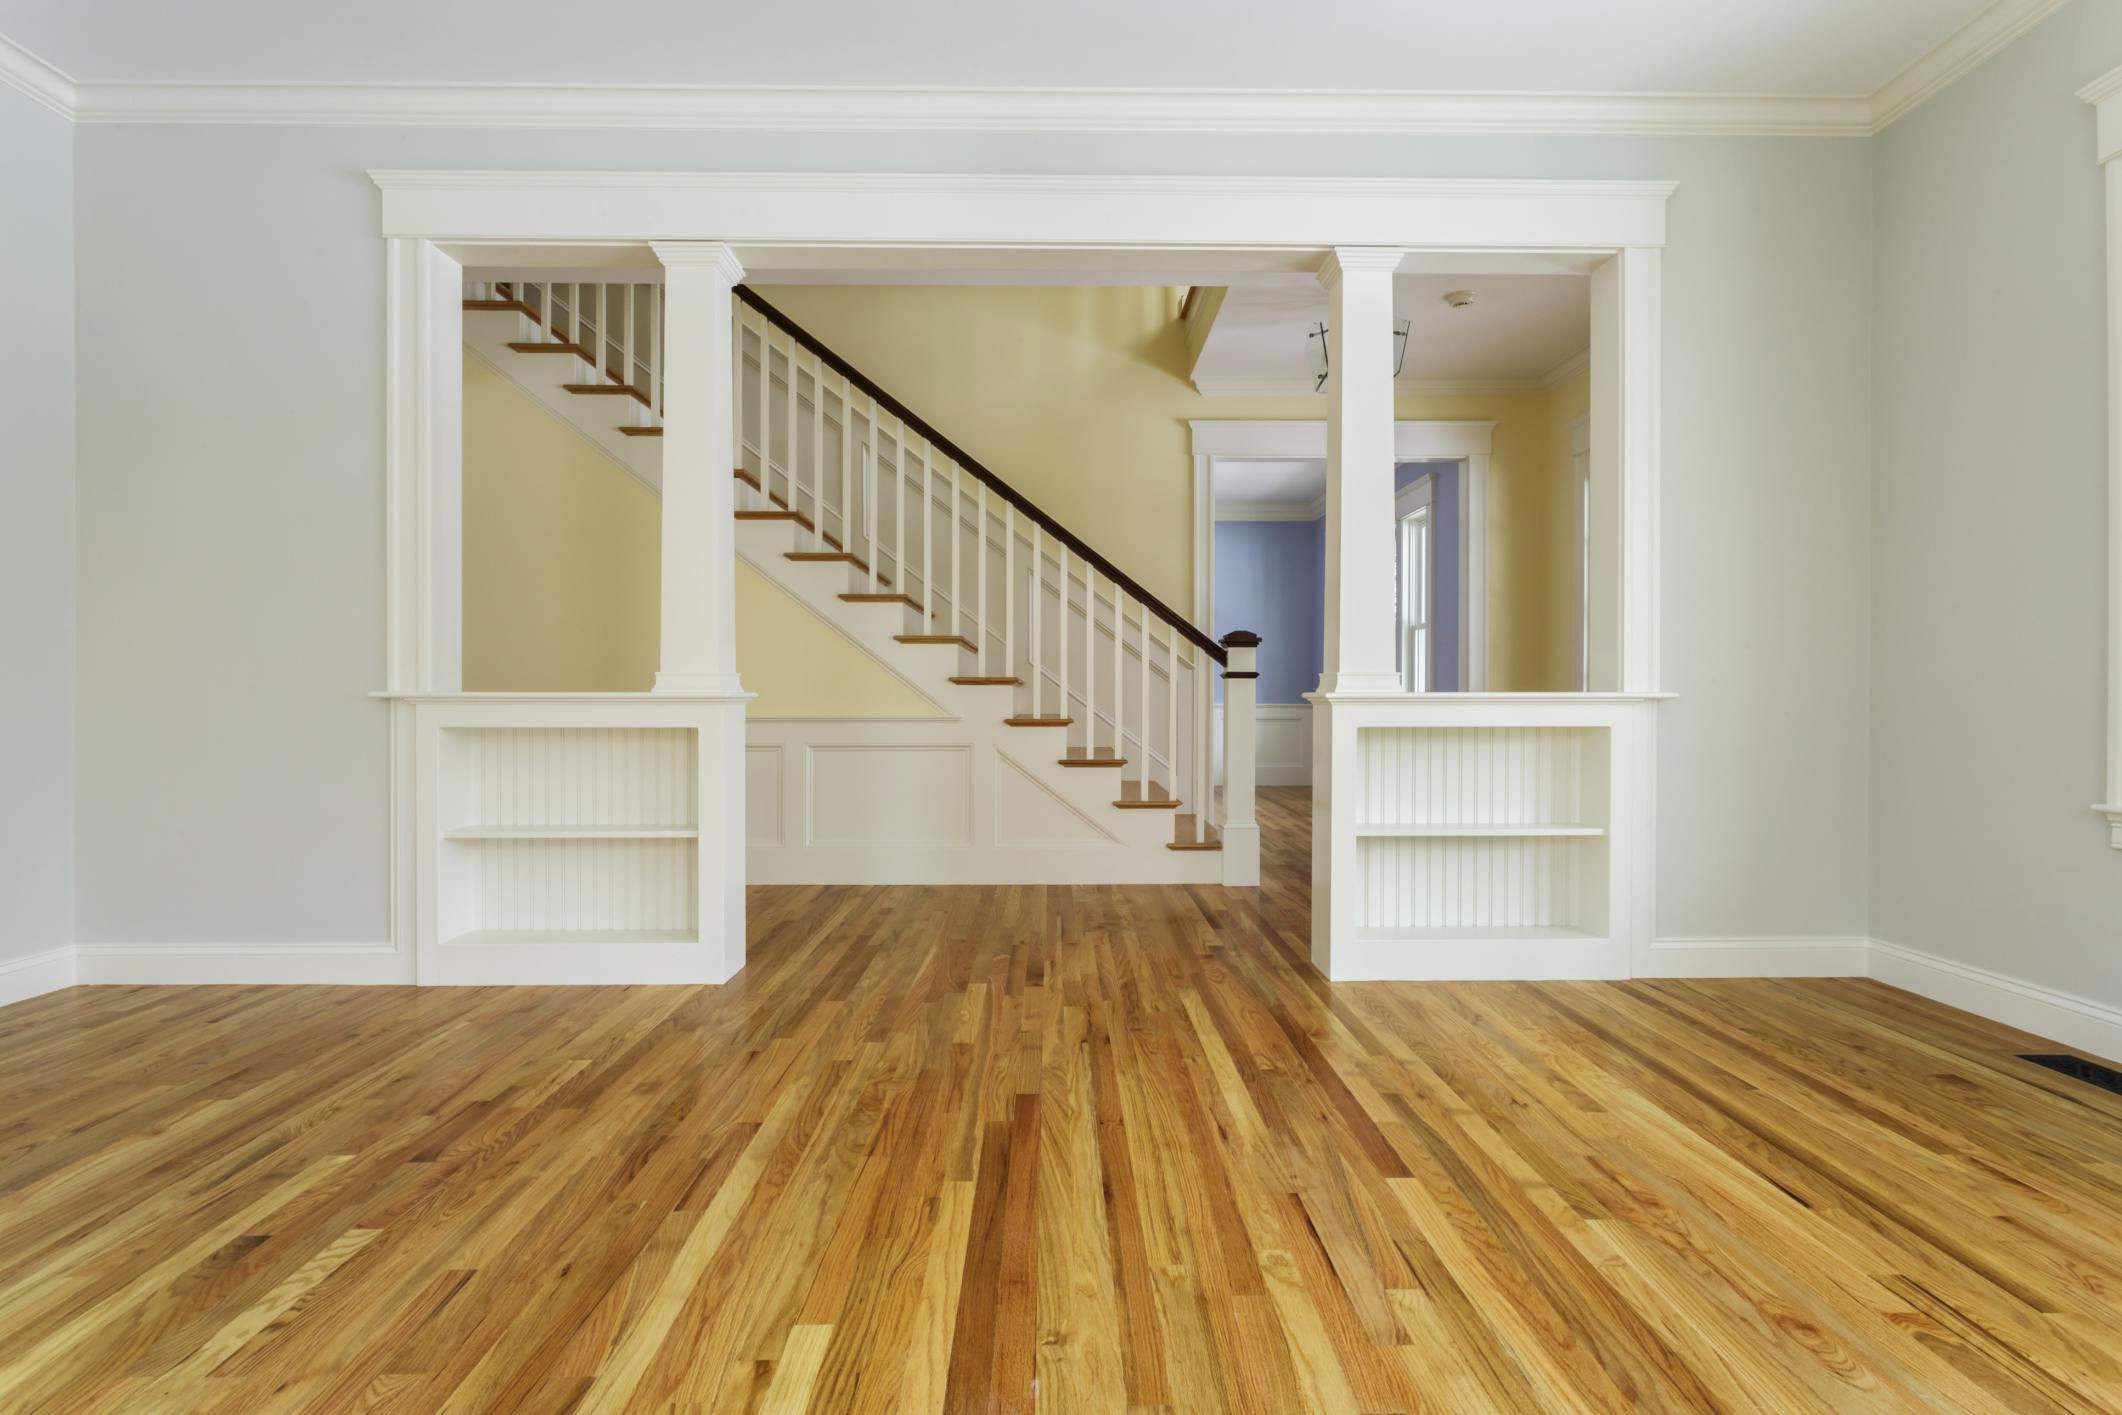 Hardwood Floor Repair Utah Of Hardwood Floor Installation Archives Wlcu for Hardwood Floor Repair Near Me Inspirational Guide to solid Hardwood Floors Hardwood Floor Repair